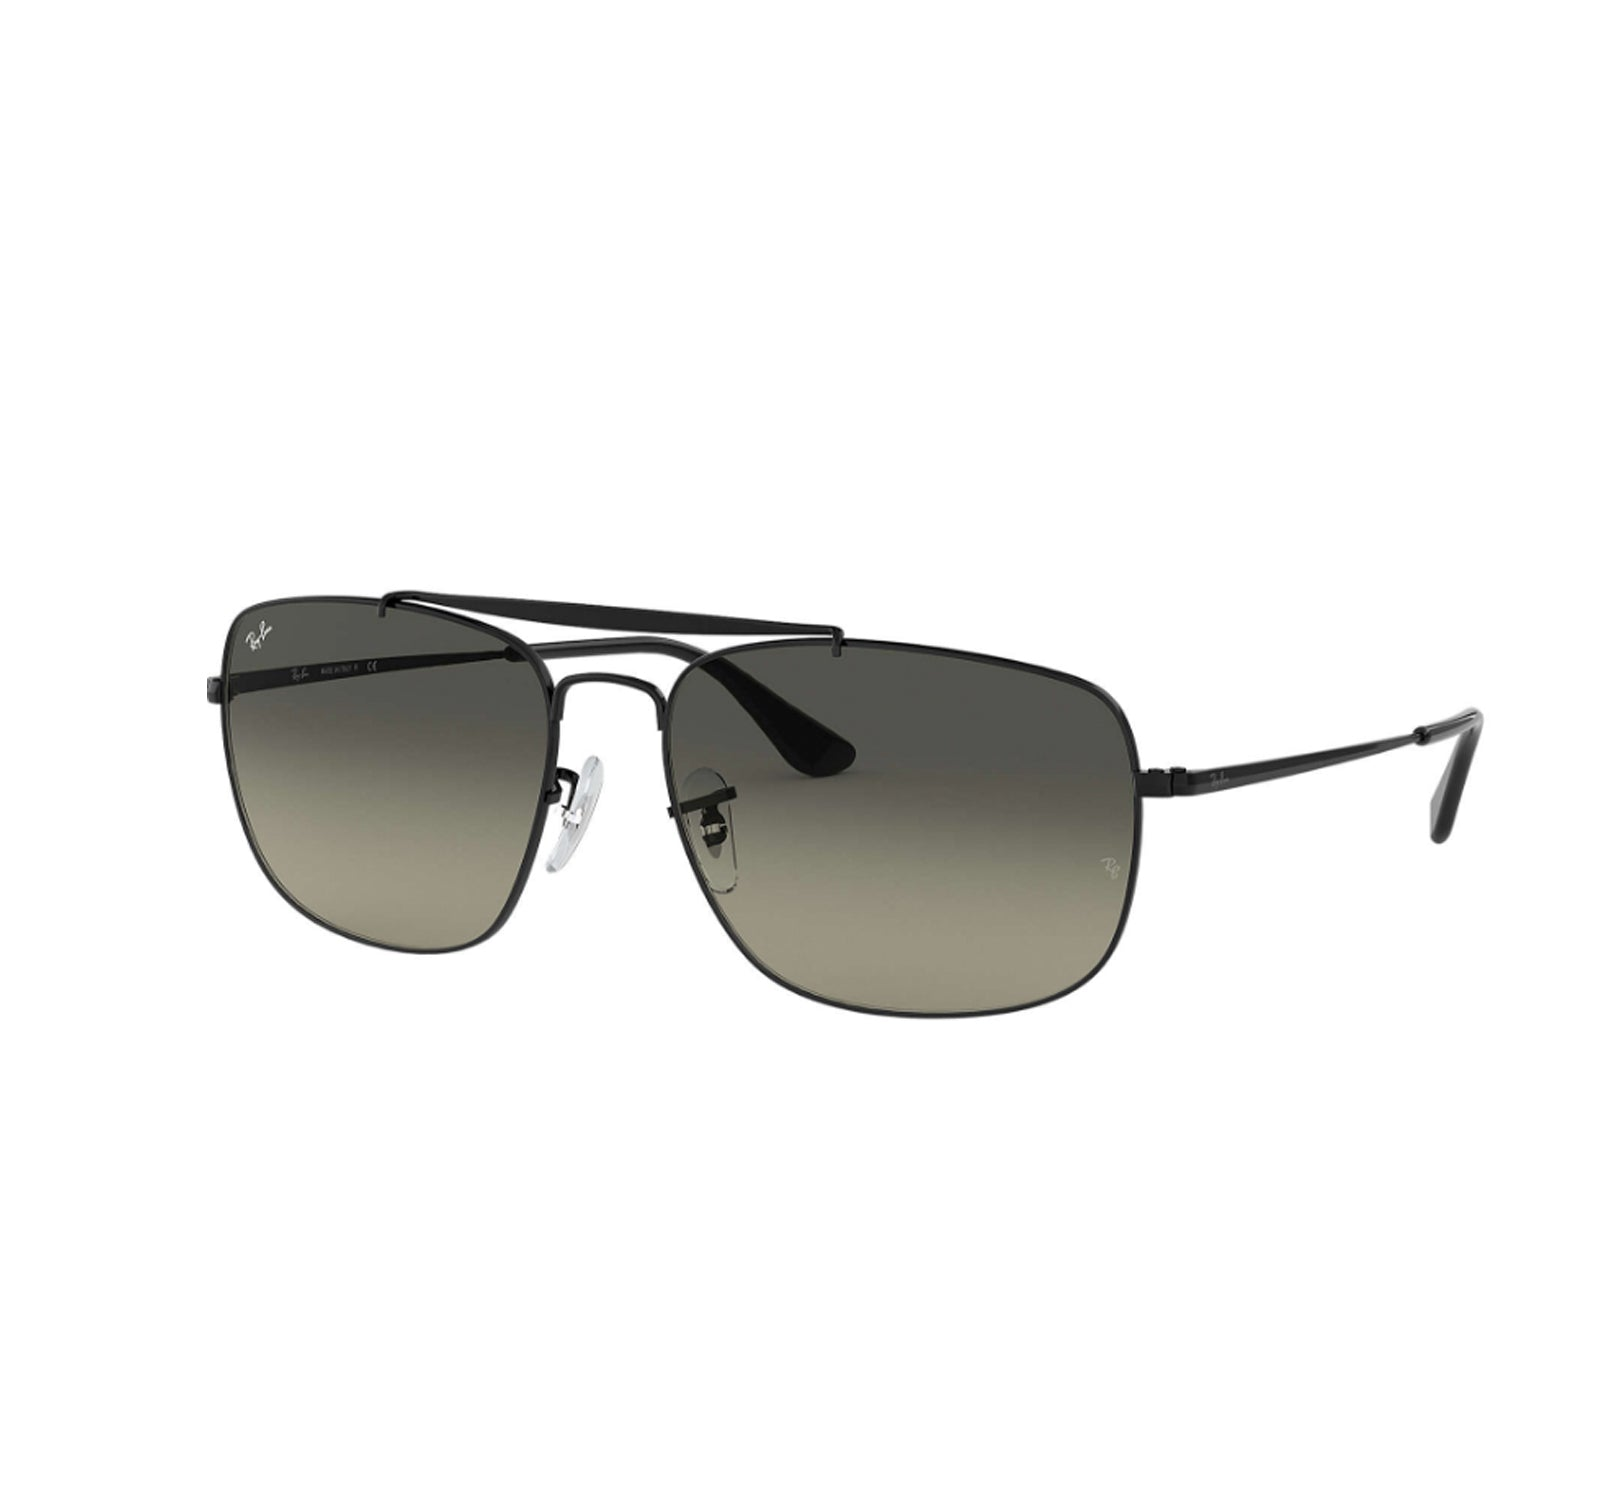 a93f3d2b9856 Ray-Ban The Colonel Men's Sunglasses - Black Frame/Grey Gradient Lens - Surf  Station Store